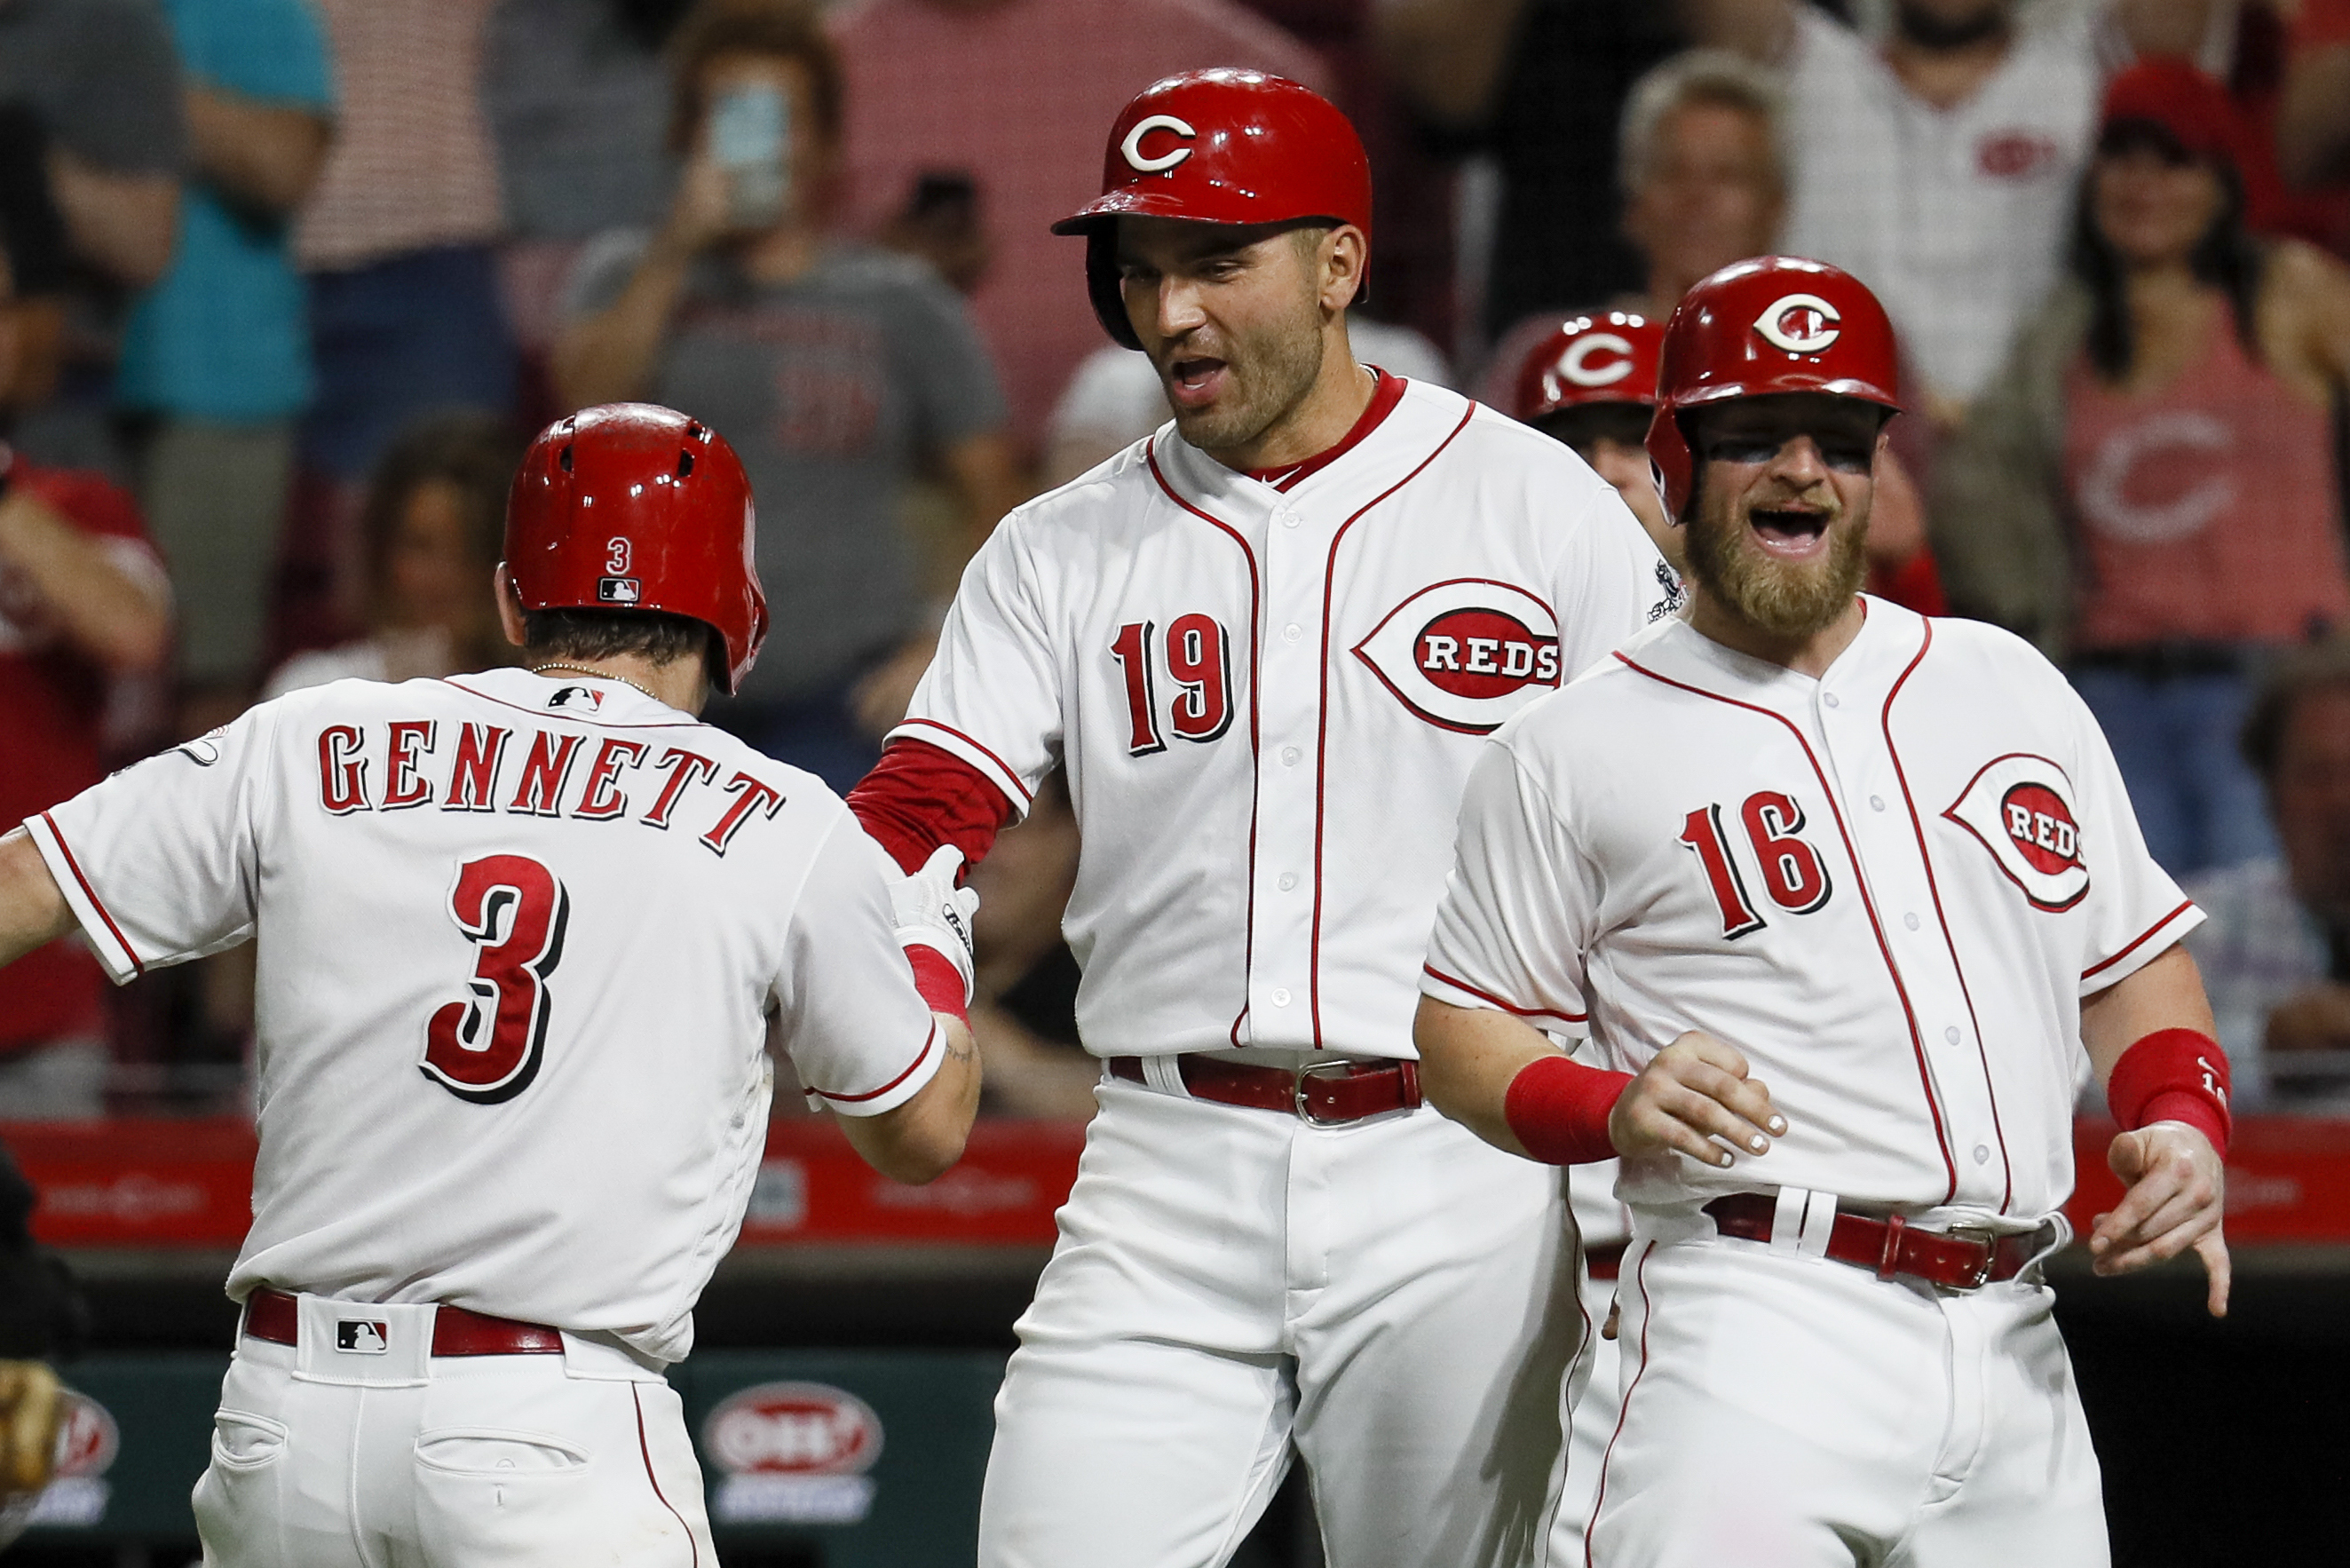 Cincinnati Reds' Scooter Gennett (3) celebrates his grand slam off Pittsburgh Pirates starting pitcher Jameson Taillon with Joey Votto (19) and Tucker Barnhart (16) during the fifth inning of a baseball game Tuesday, May 22, 2018, in Cincinnati. (AP Photo/John Minchillo)